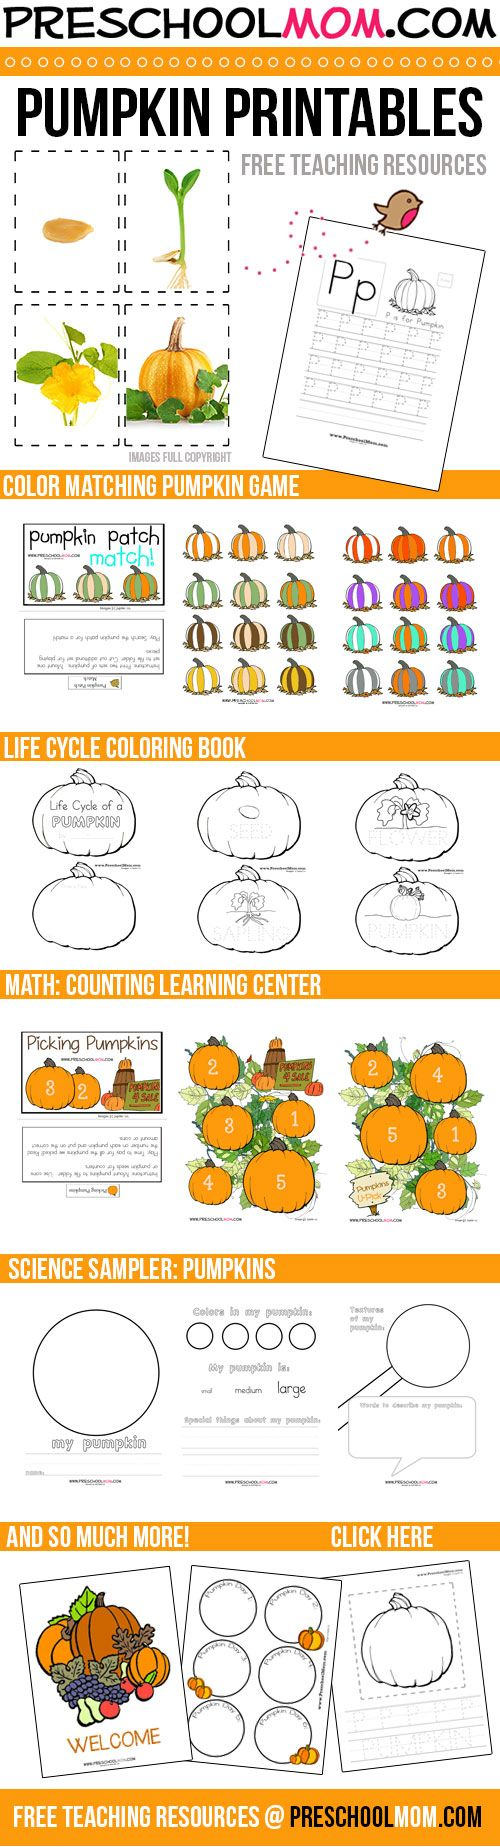 28 best fall science images on pinterest science activities